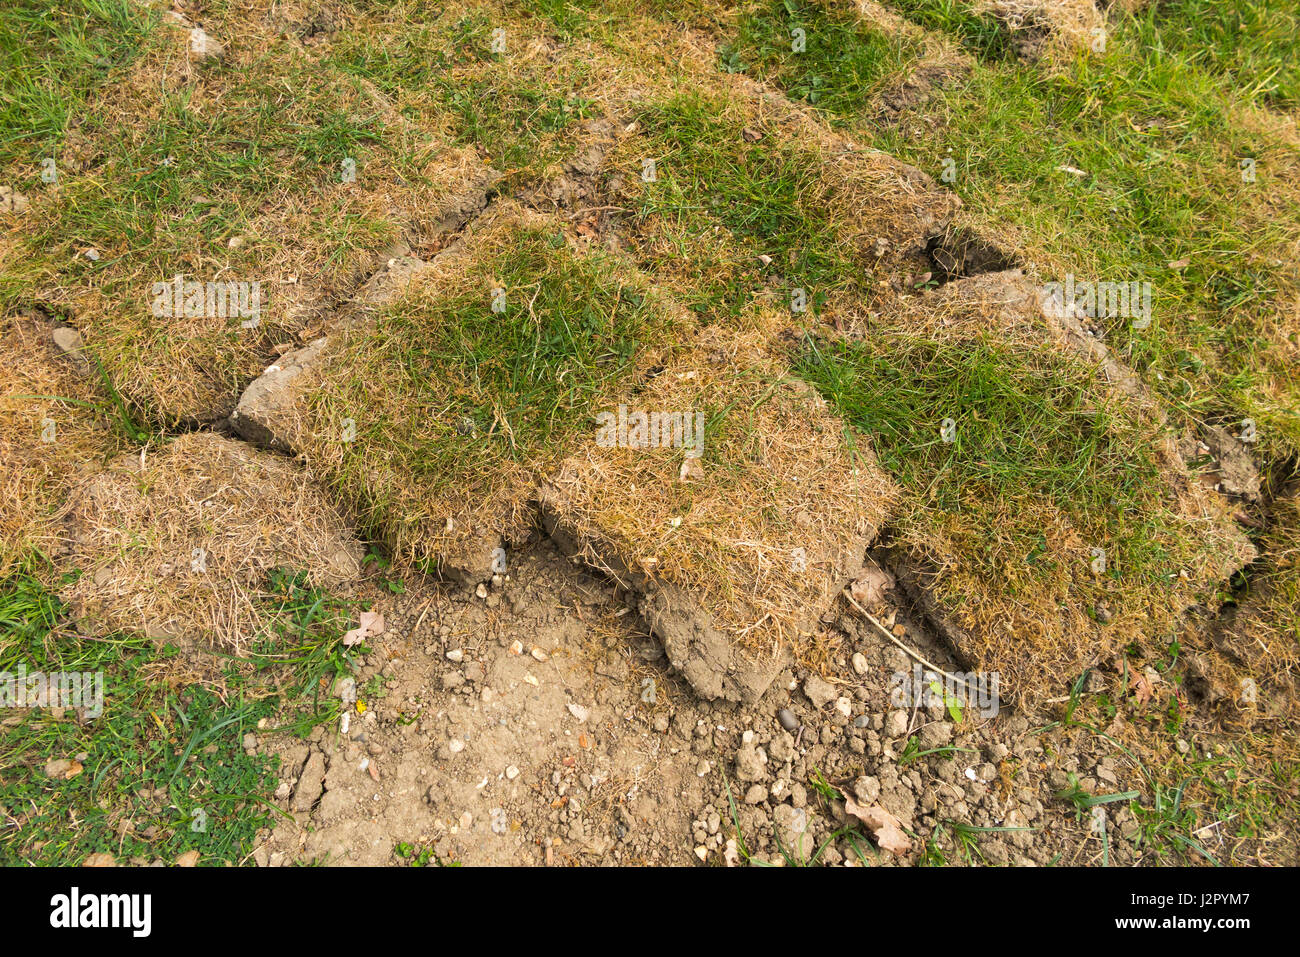 Very badly laid turf / grass / lawn which hasn't bonded with the stony ground / soil beneath and has grown in patches. Stock Photo